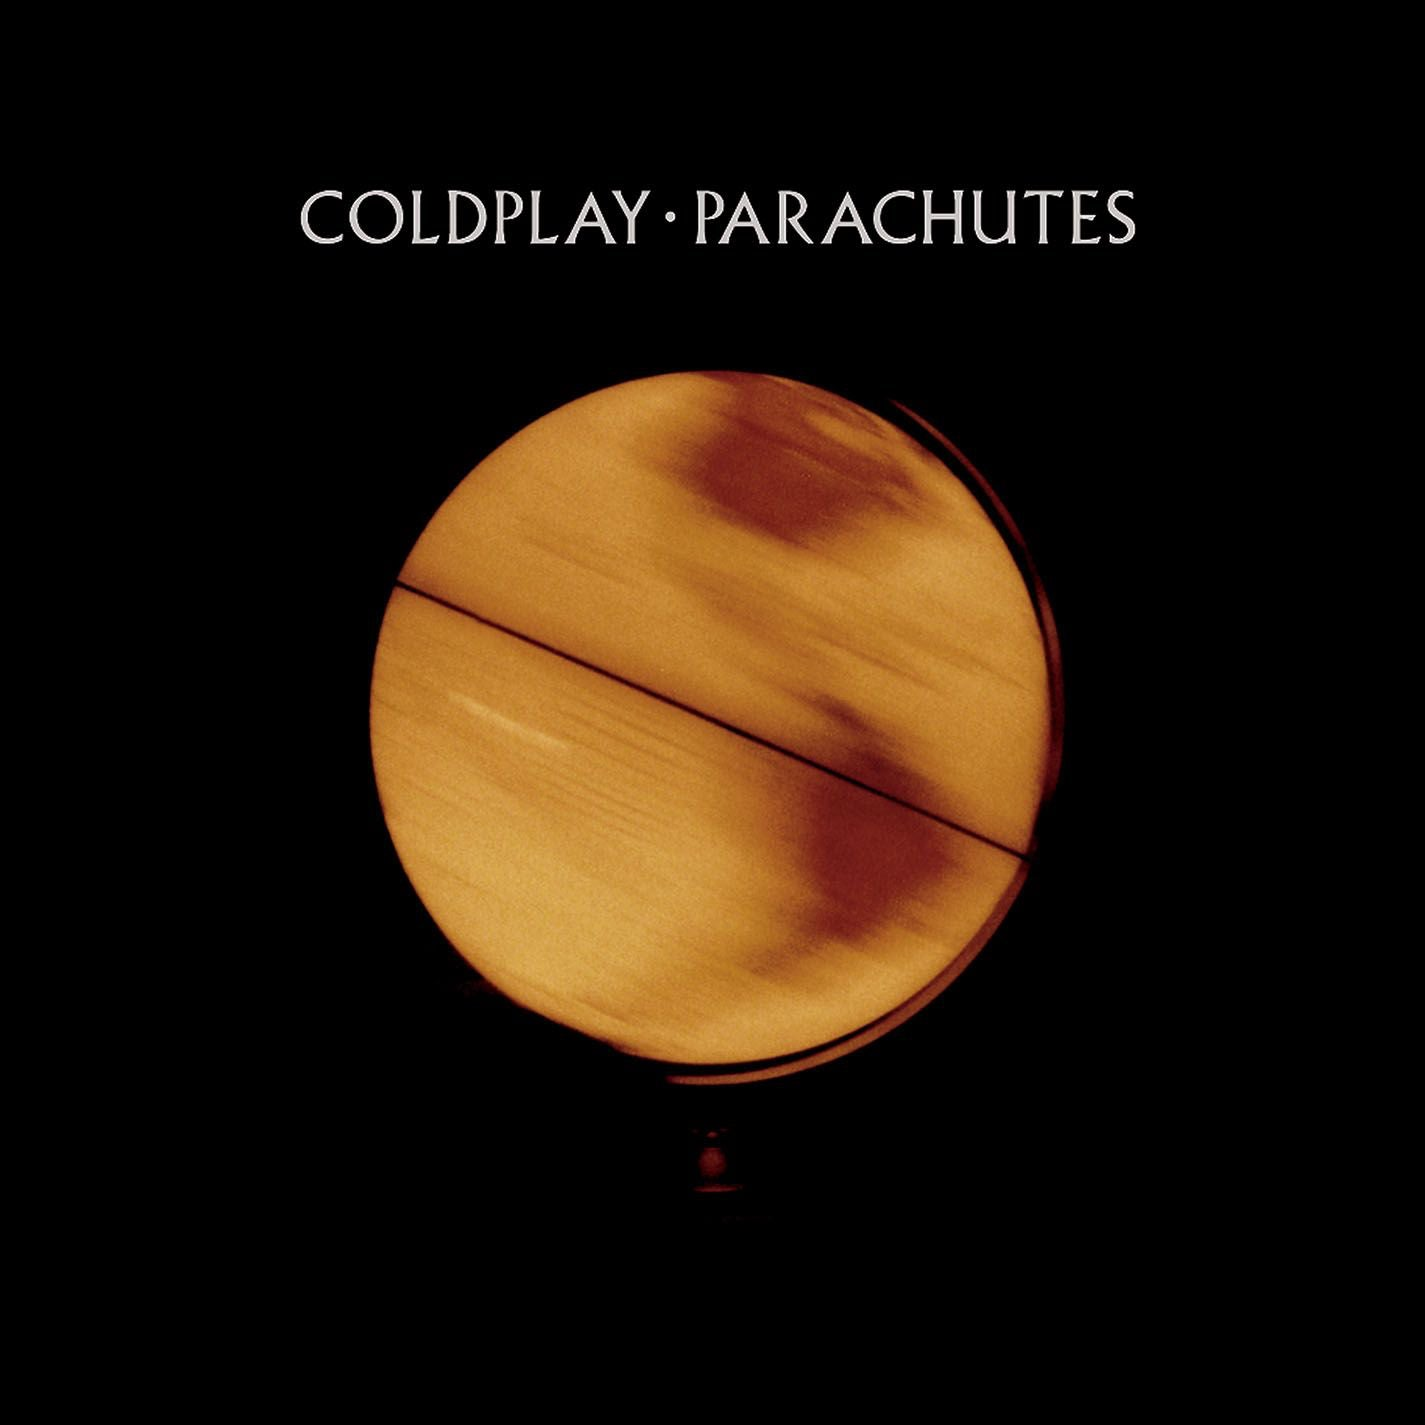 Coldplay - Parachutes 20th Anniversary 180g Yellow Vinyl Record Album